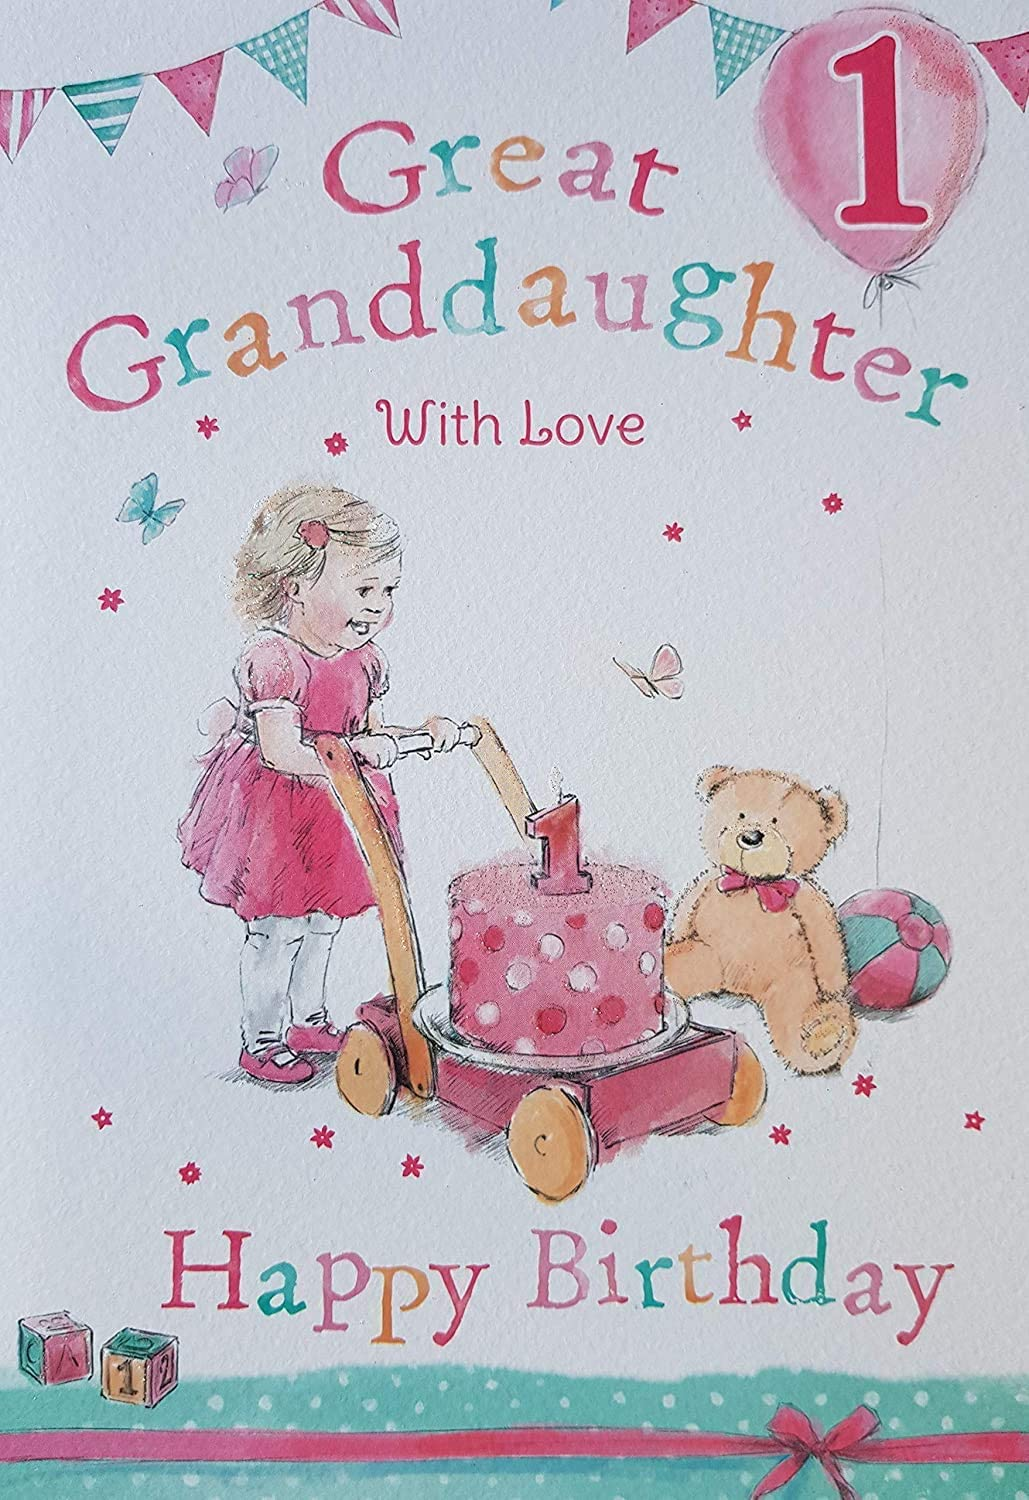 Great Granddaughter 30st 30 Today Happy Birthday Card With A Lovely Verse